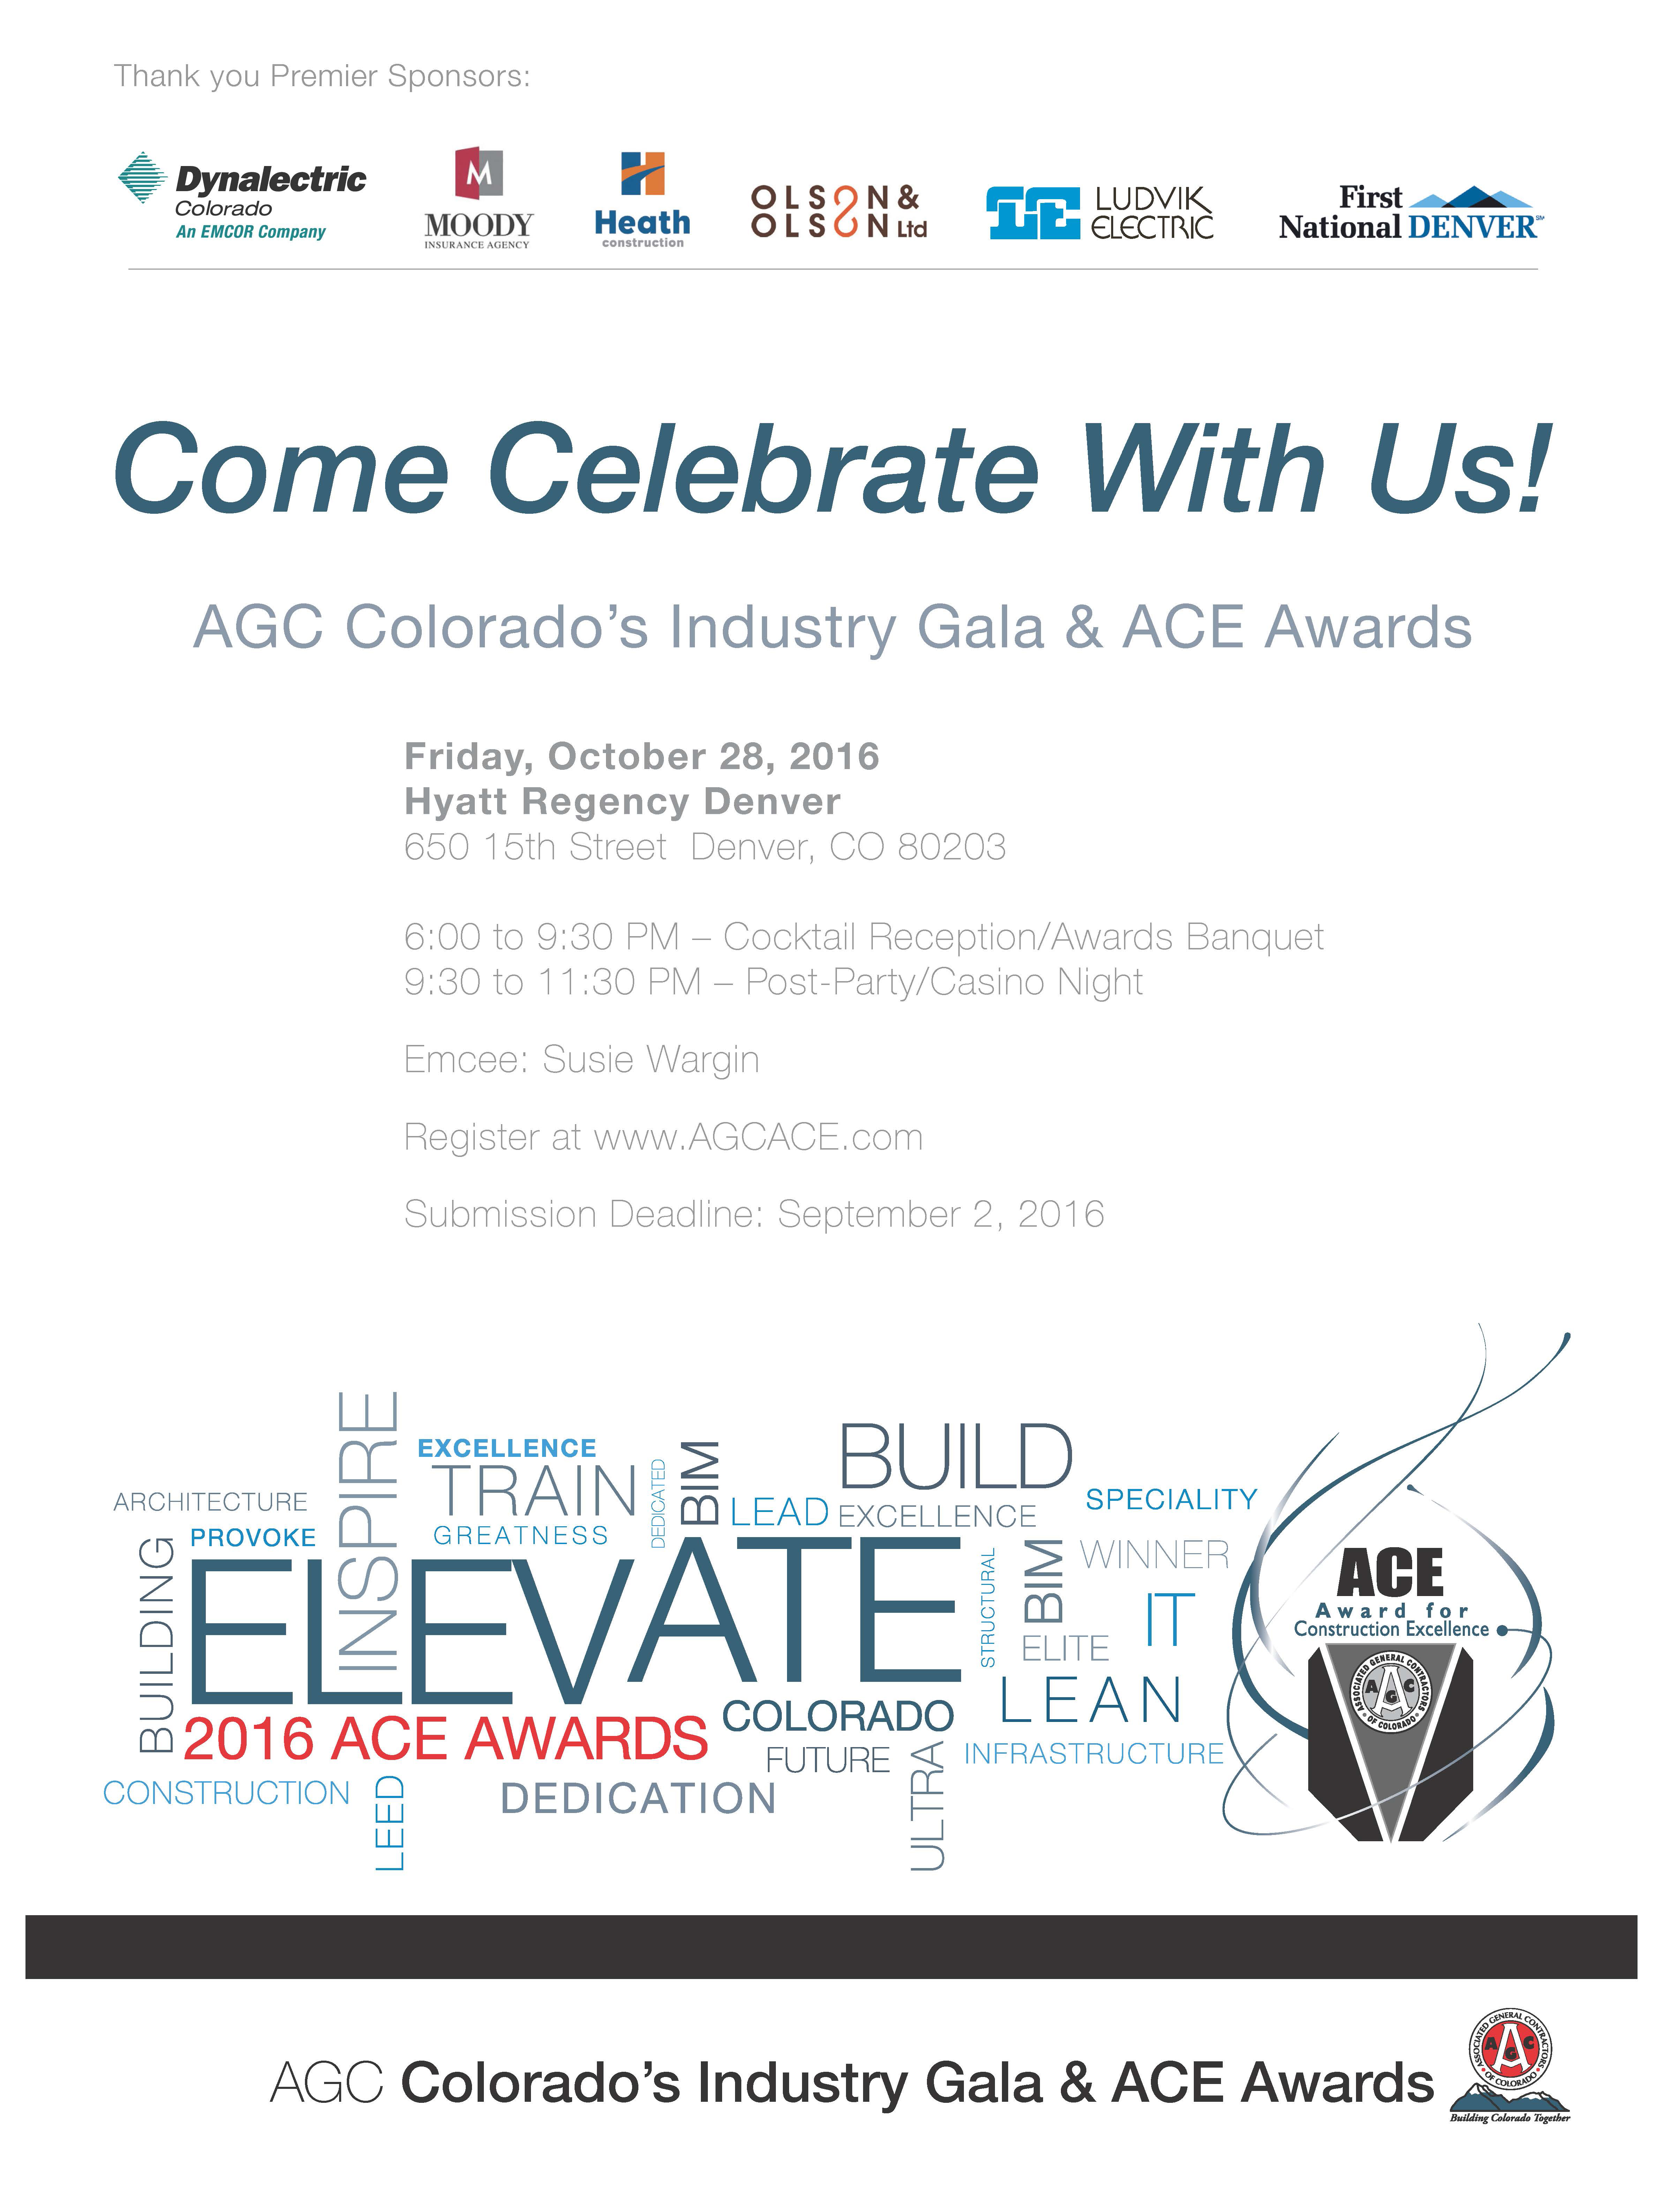 AGC ACE CO Awards Submission